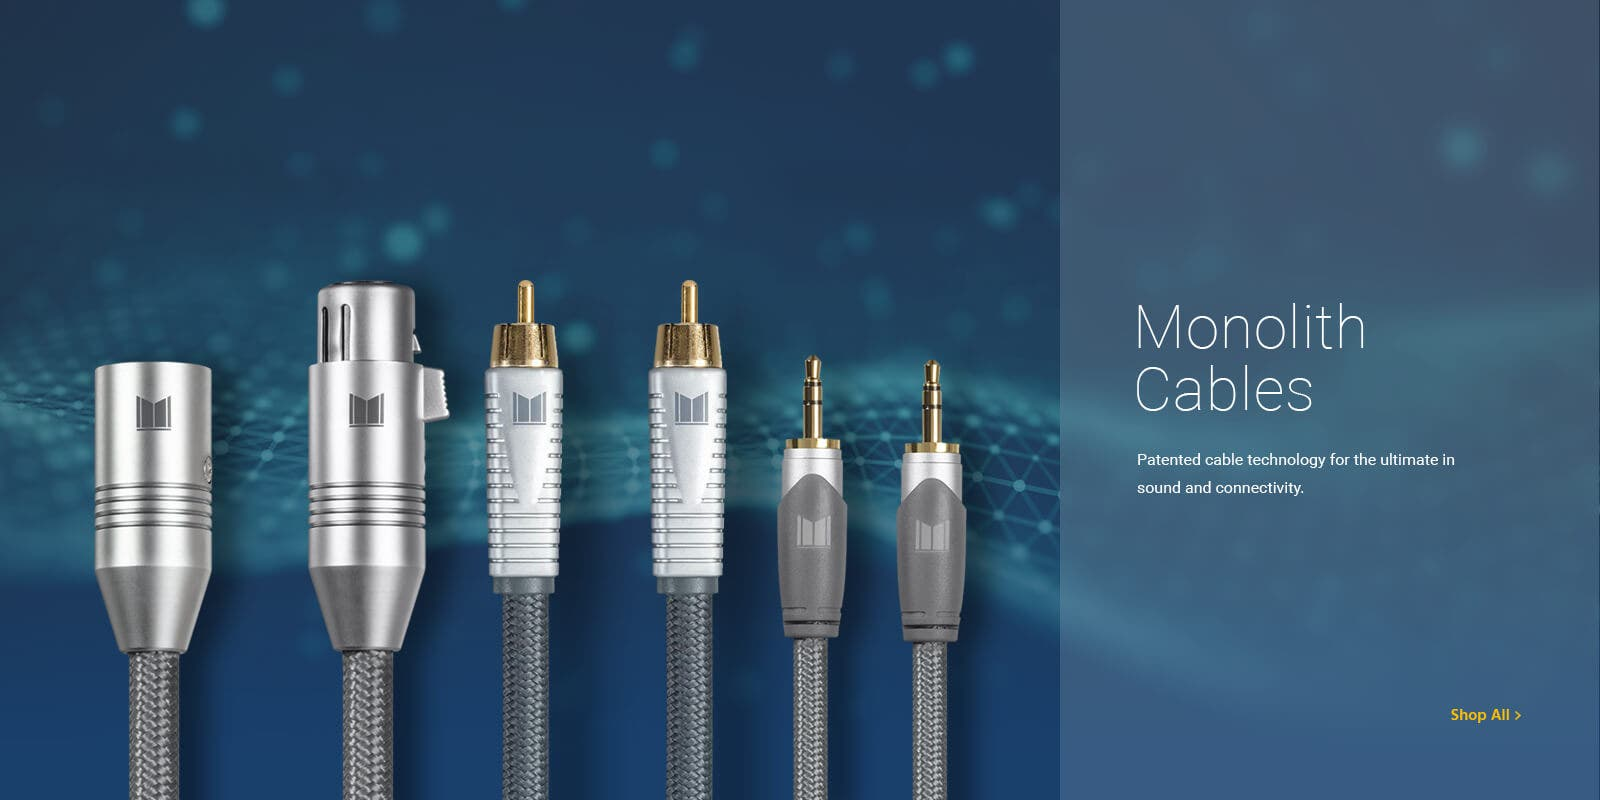 Monolith Cables. Patented cable technology for the ultimate in sound and connectivity. Shop All